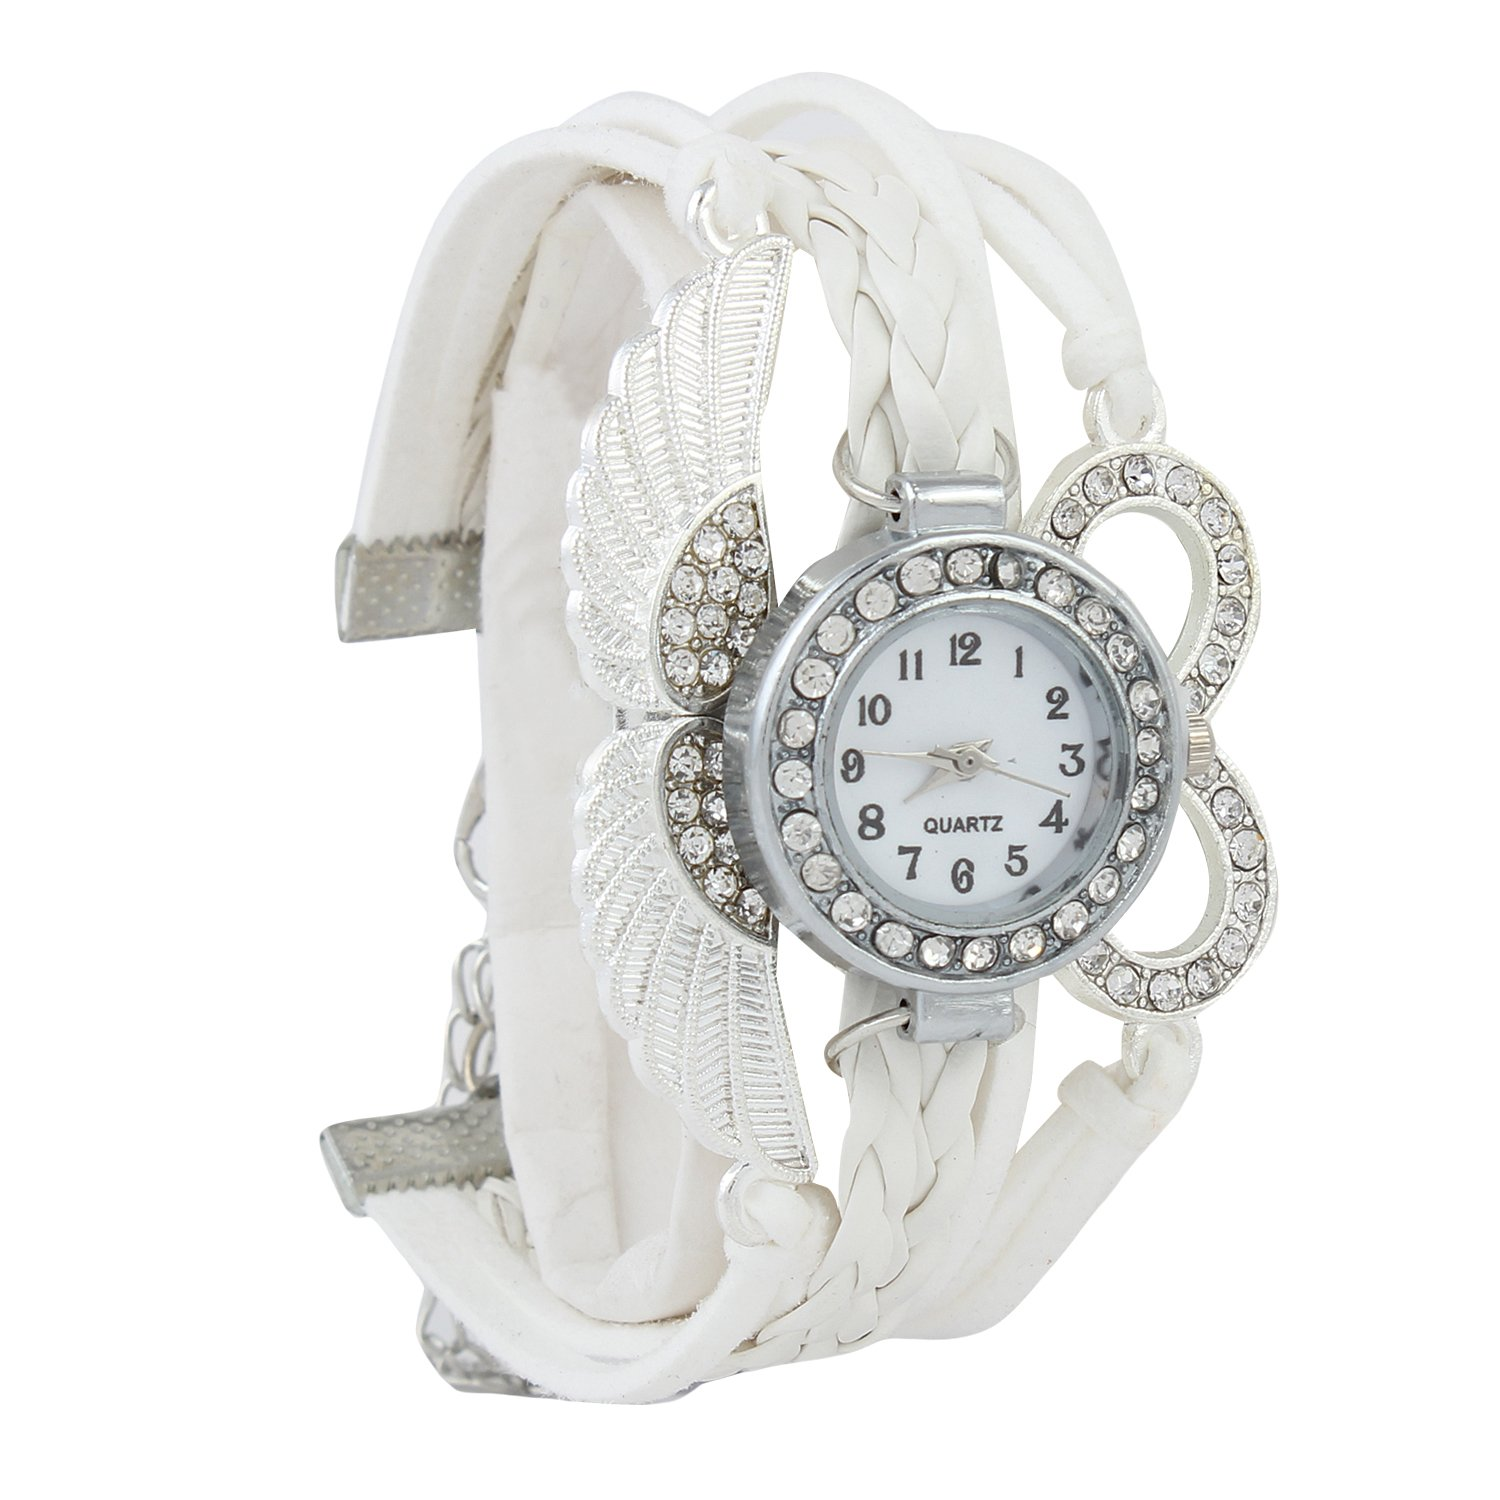 d3d777daaa2 Buy Addic Analog White Dial Women s Watch - NW23 Online at Low Prices in  India - Amazon.in